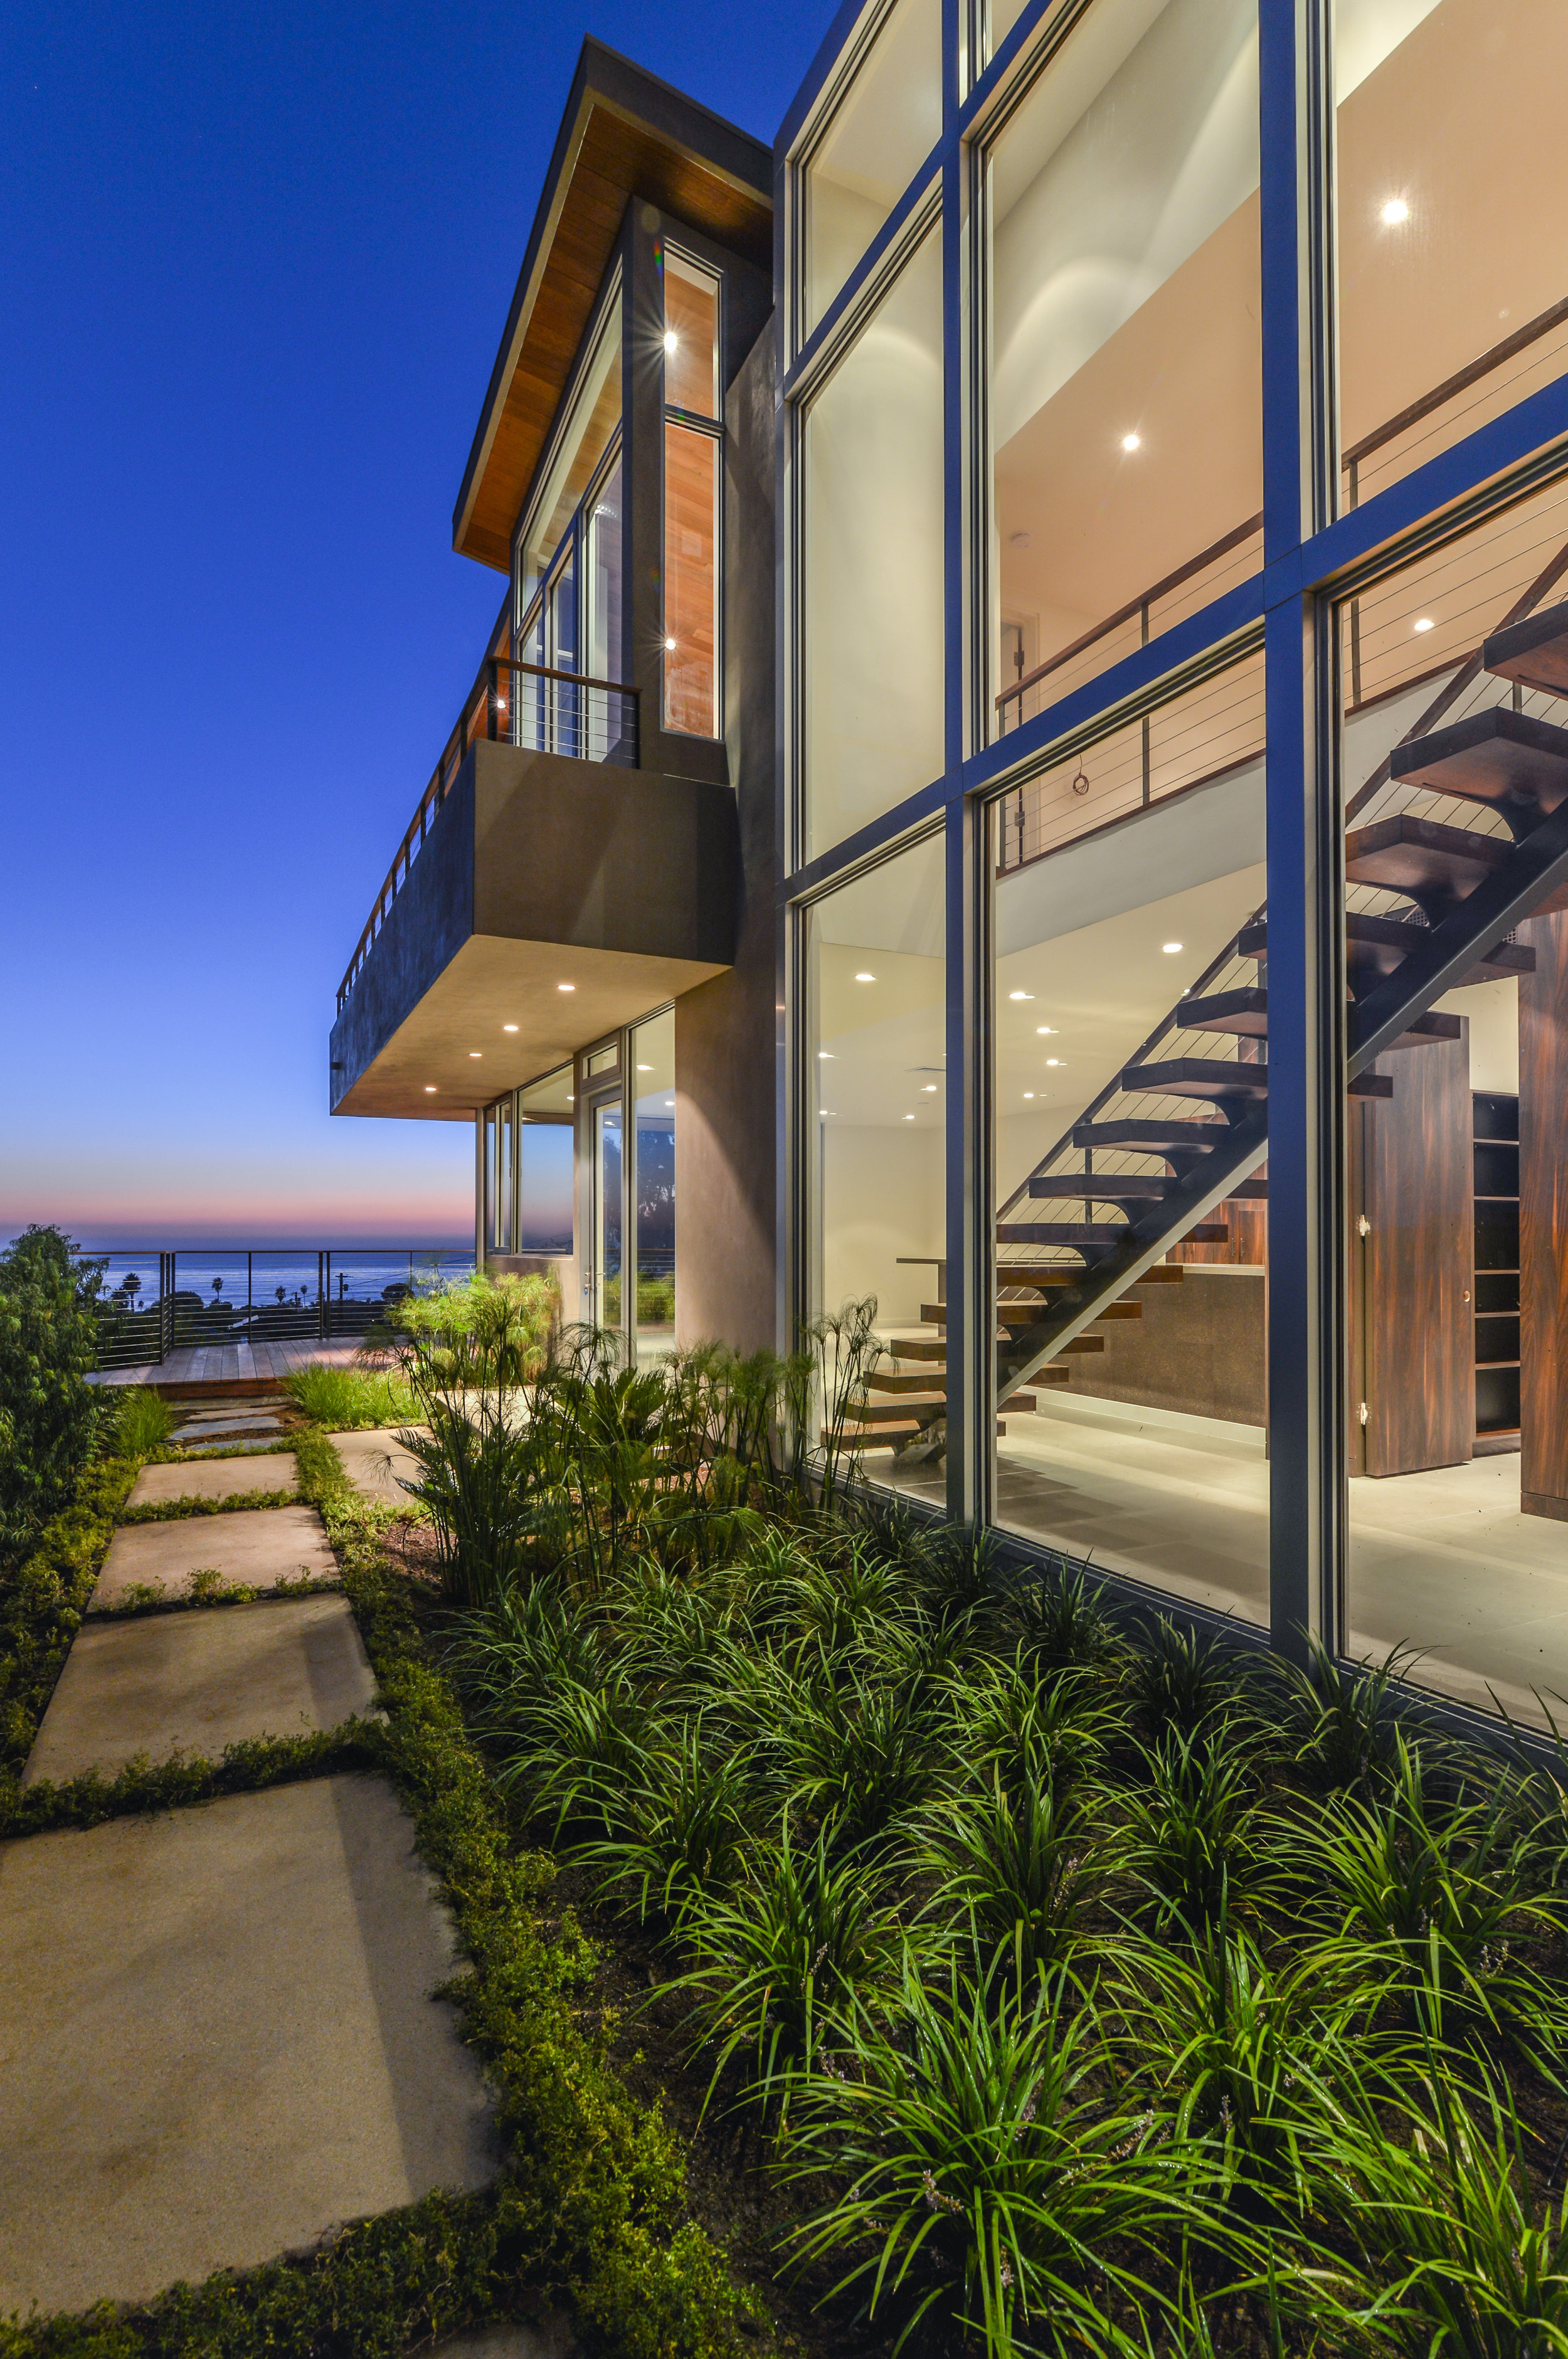 S.E.A.-Studio-Environmental-Architecture-David-Hertz-FAIA-Linda-Rosa-House-La-Jolla-San-Diego-sustainable-regenerative-restorative-design-modern-residential-mindful-garden-panoramic-ocean-view-open-concept-california-dream-6.jpg